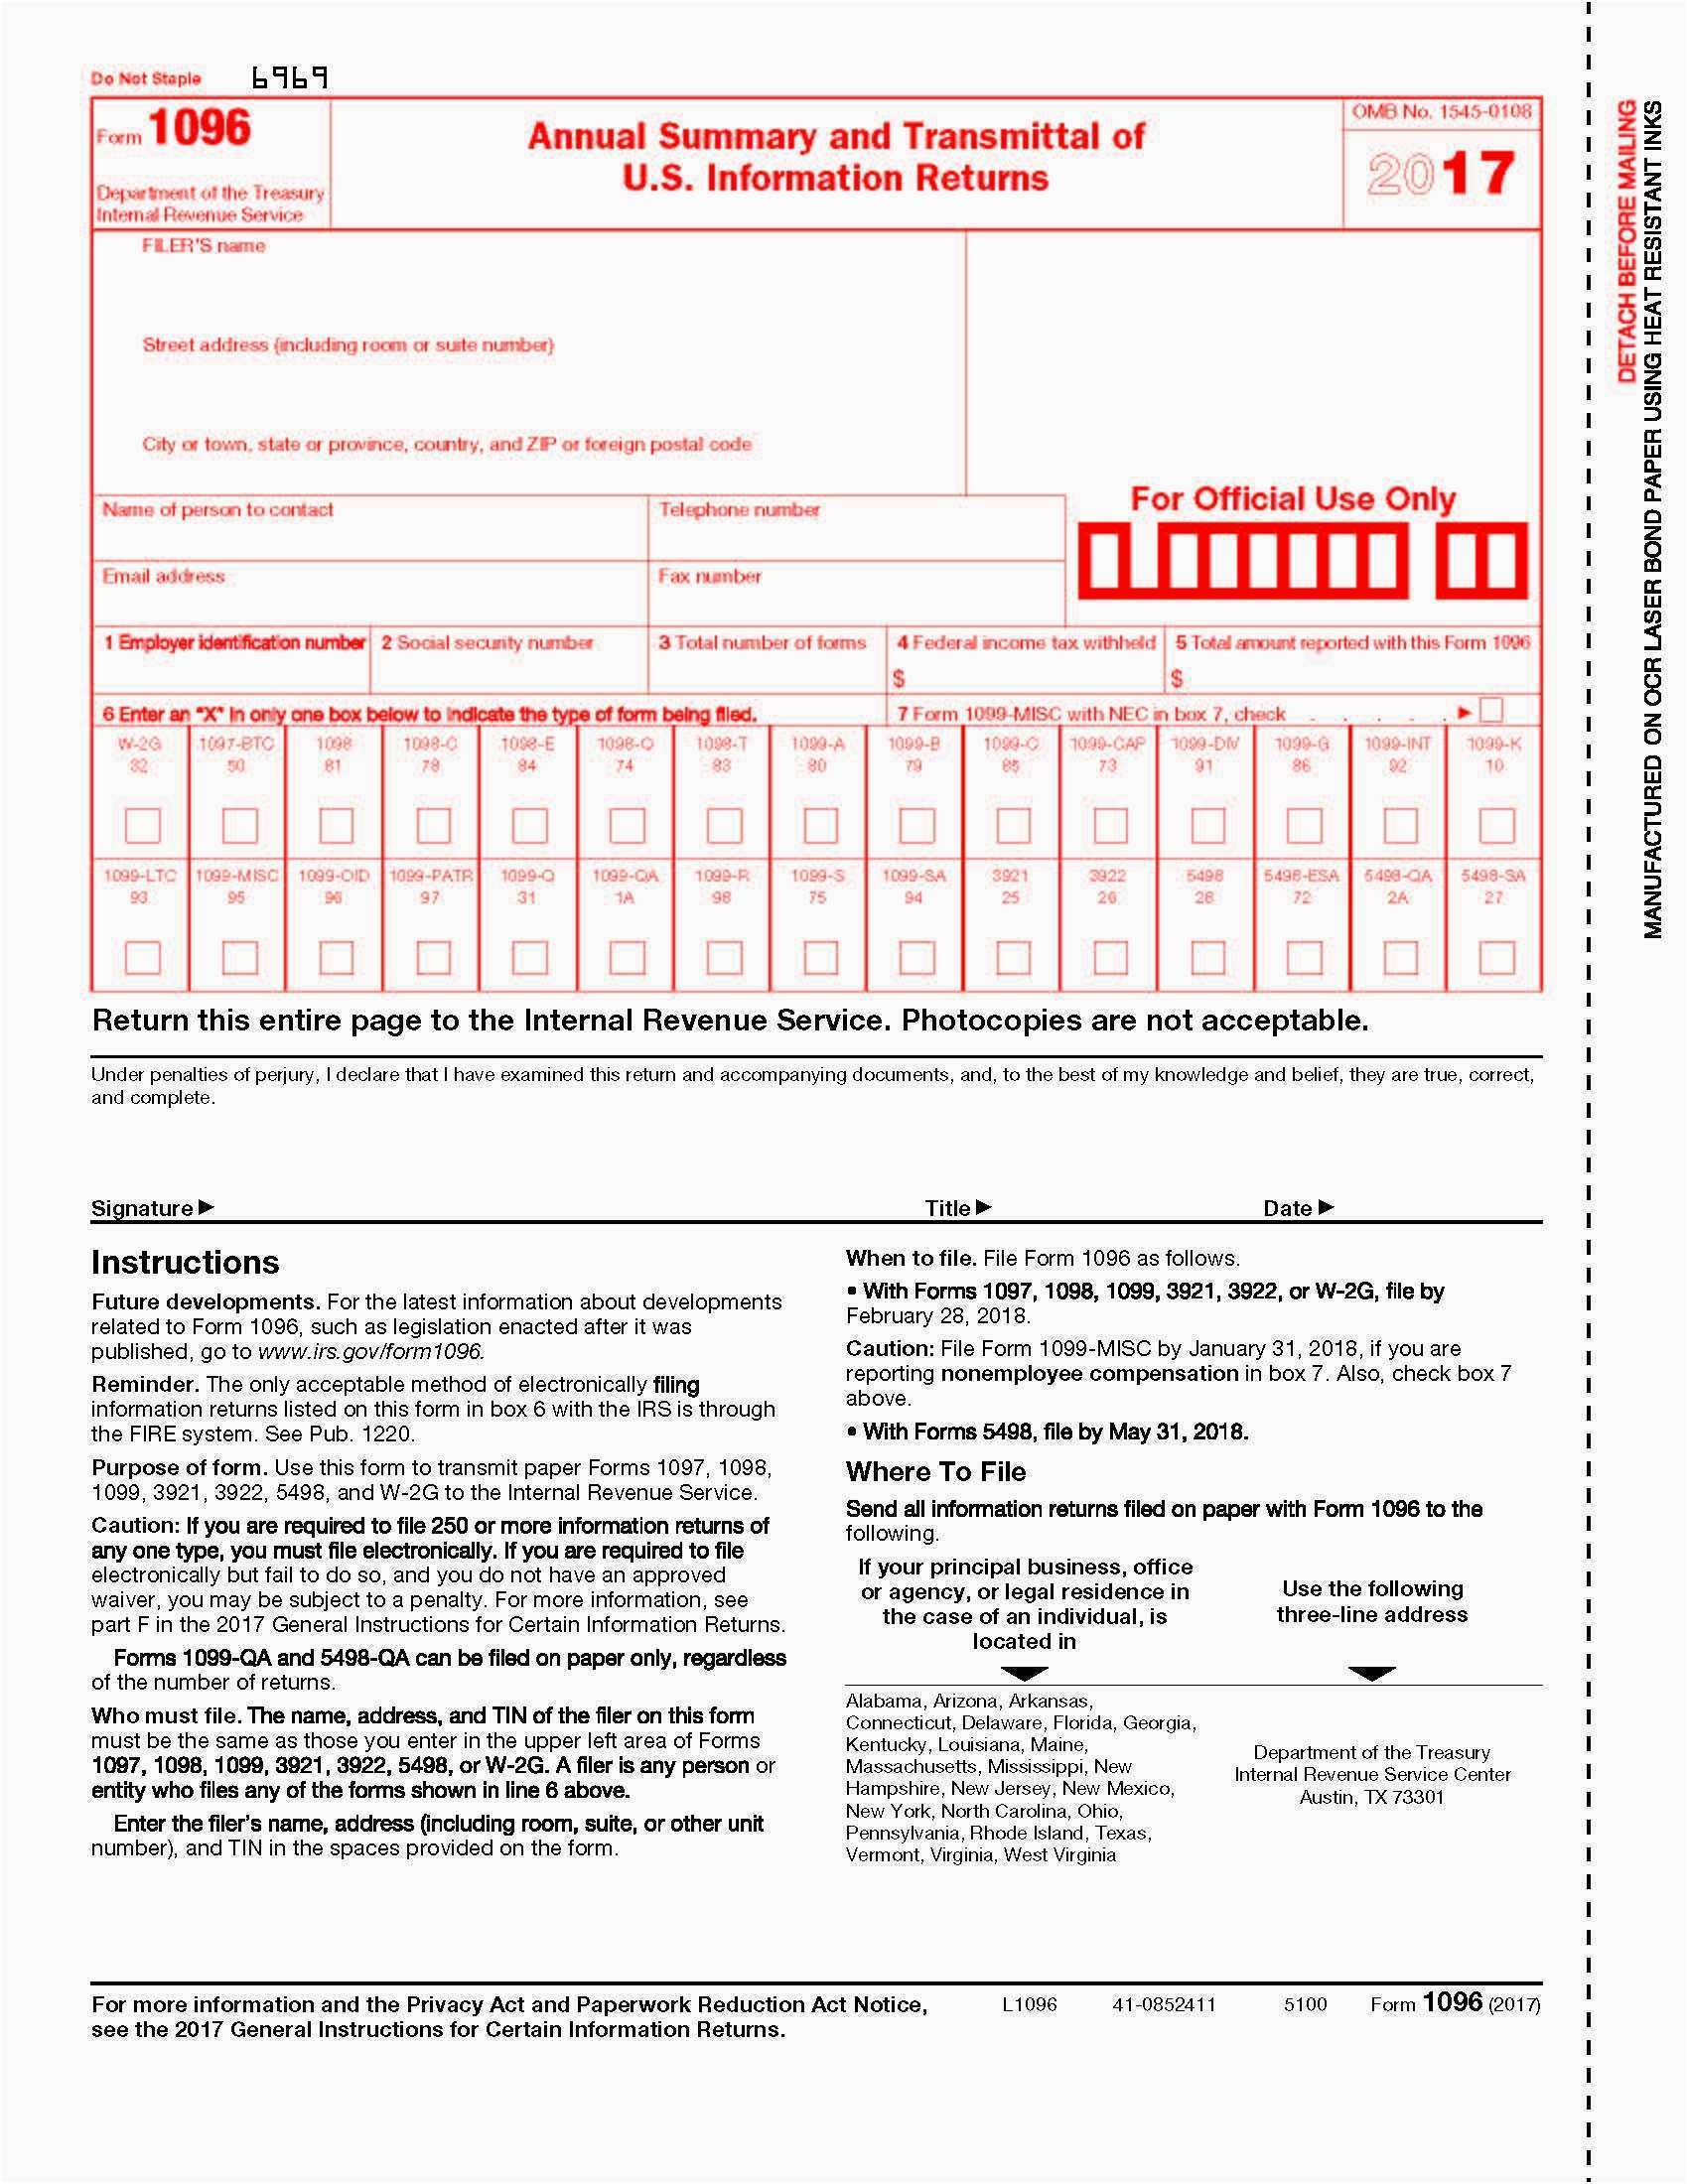 1099 Misc Form 2013 Template Canredatanetco #46690500034 – 1099 Form - Free Printable 1099 Misc Form 2013